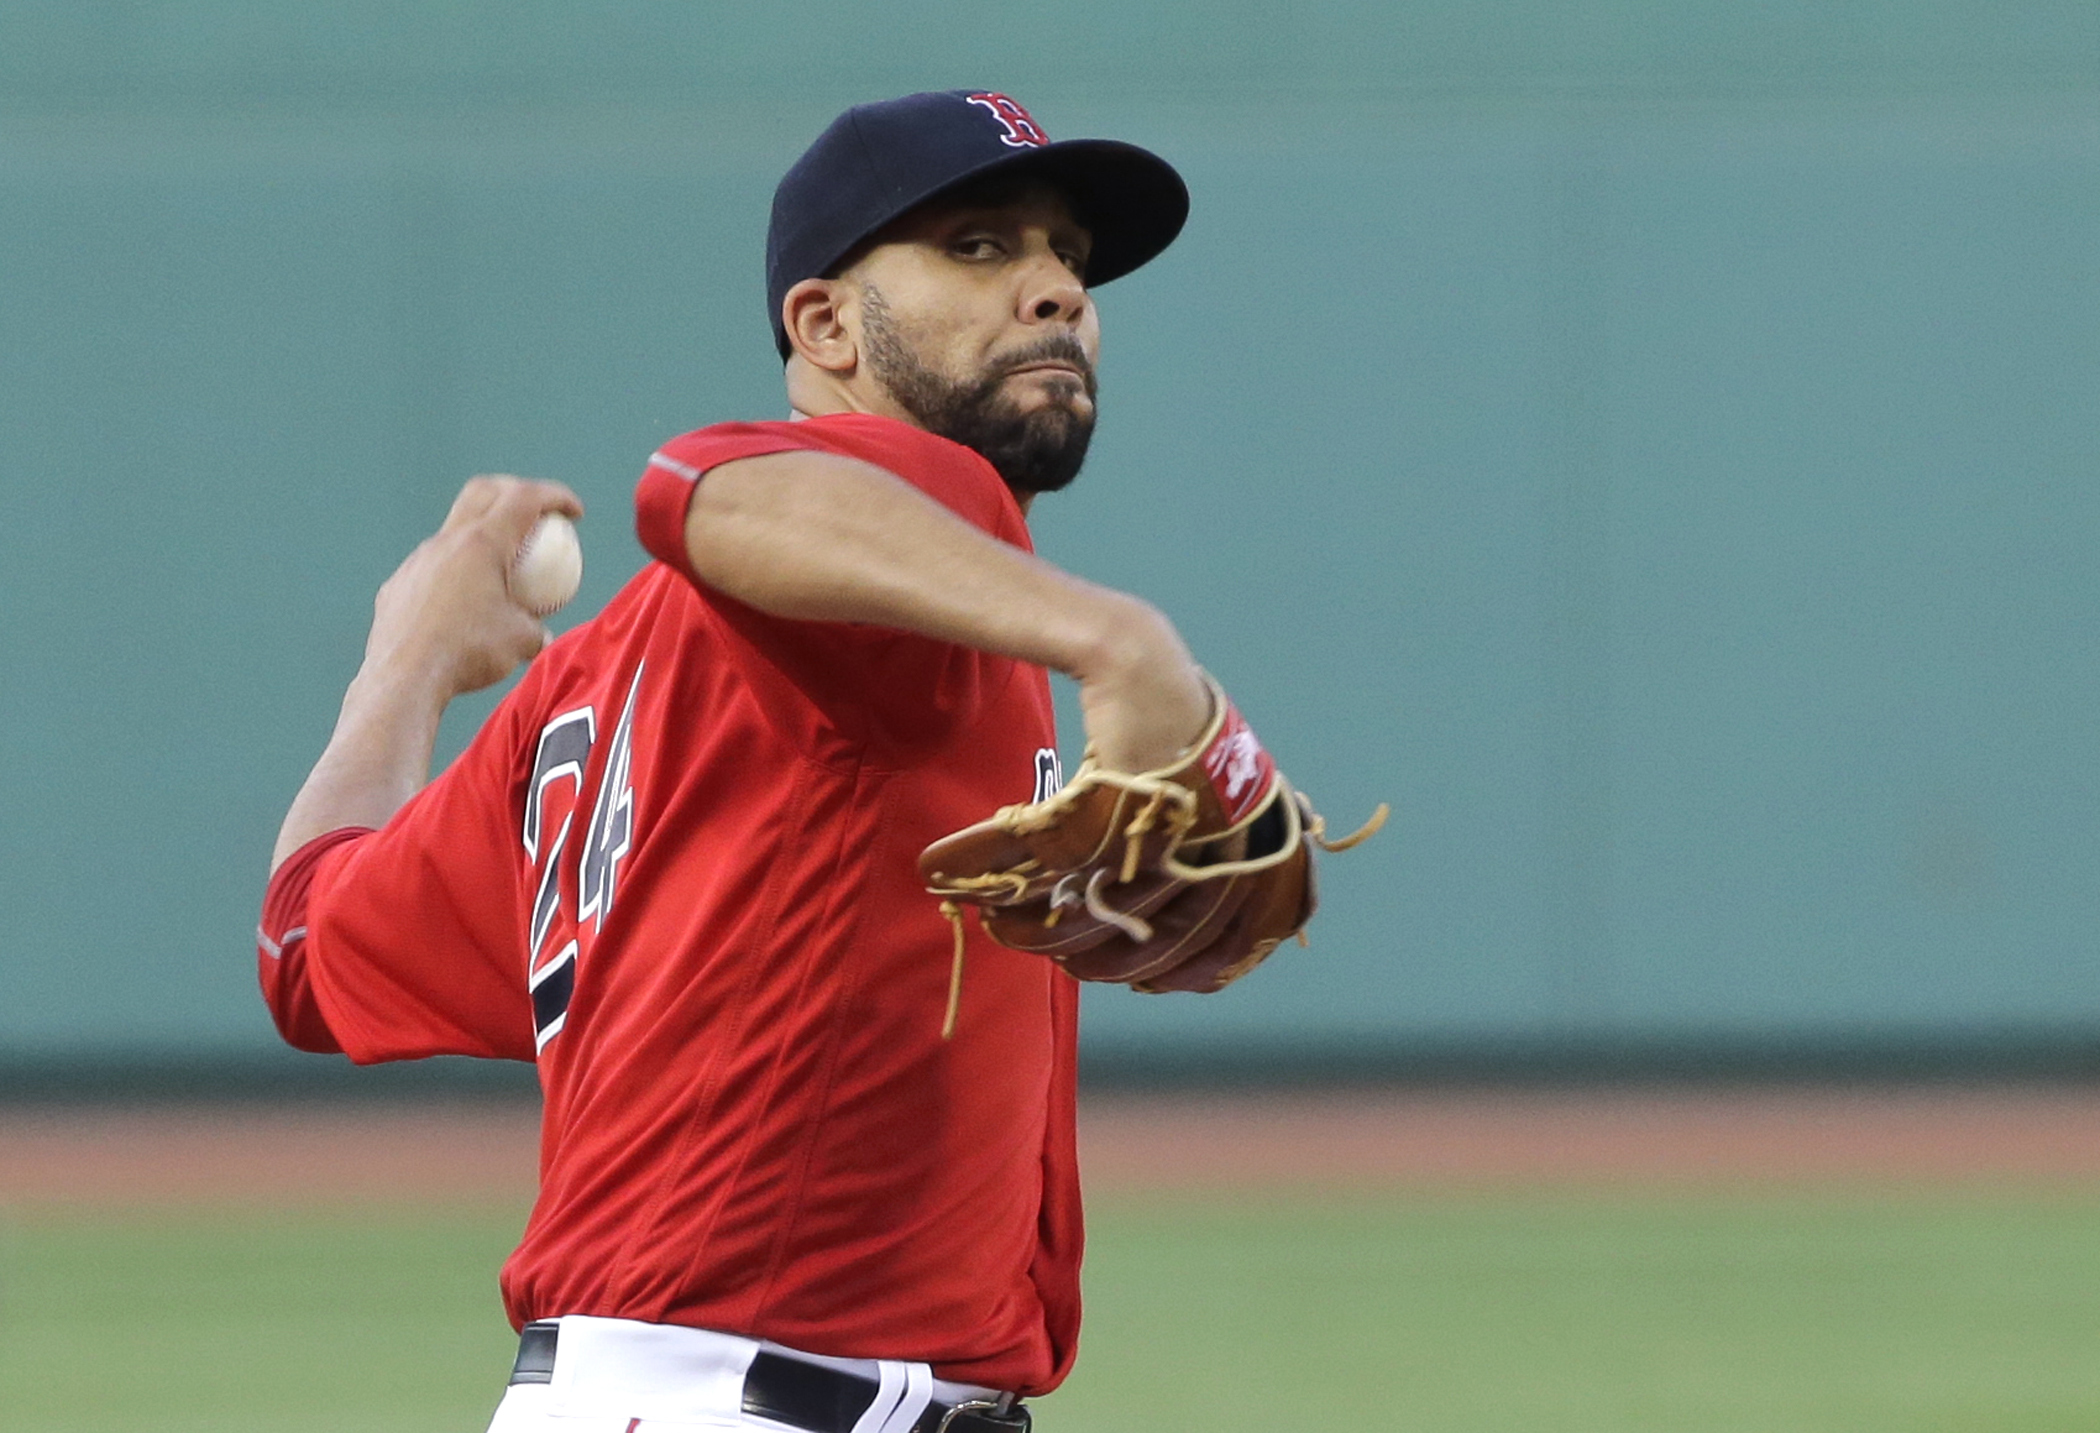 Boston Red Sox starting pitcher David Price delivers to the Toronto Blue Jays in the first inning of a baseball game at Fenway Park, Friday, June 3, 2016, in Boston. (AP Photo/Elise Amendola)